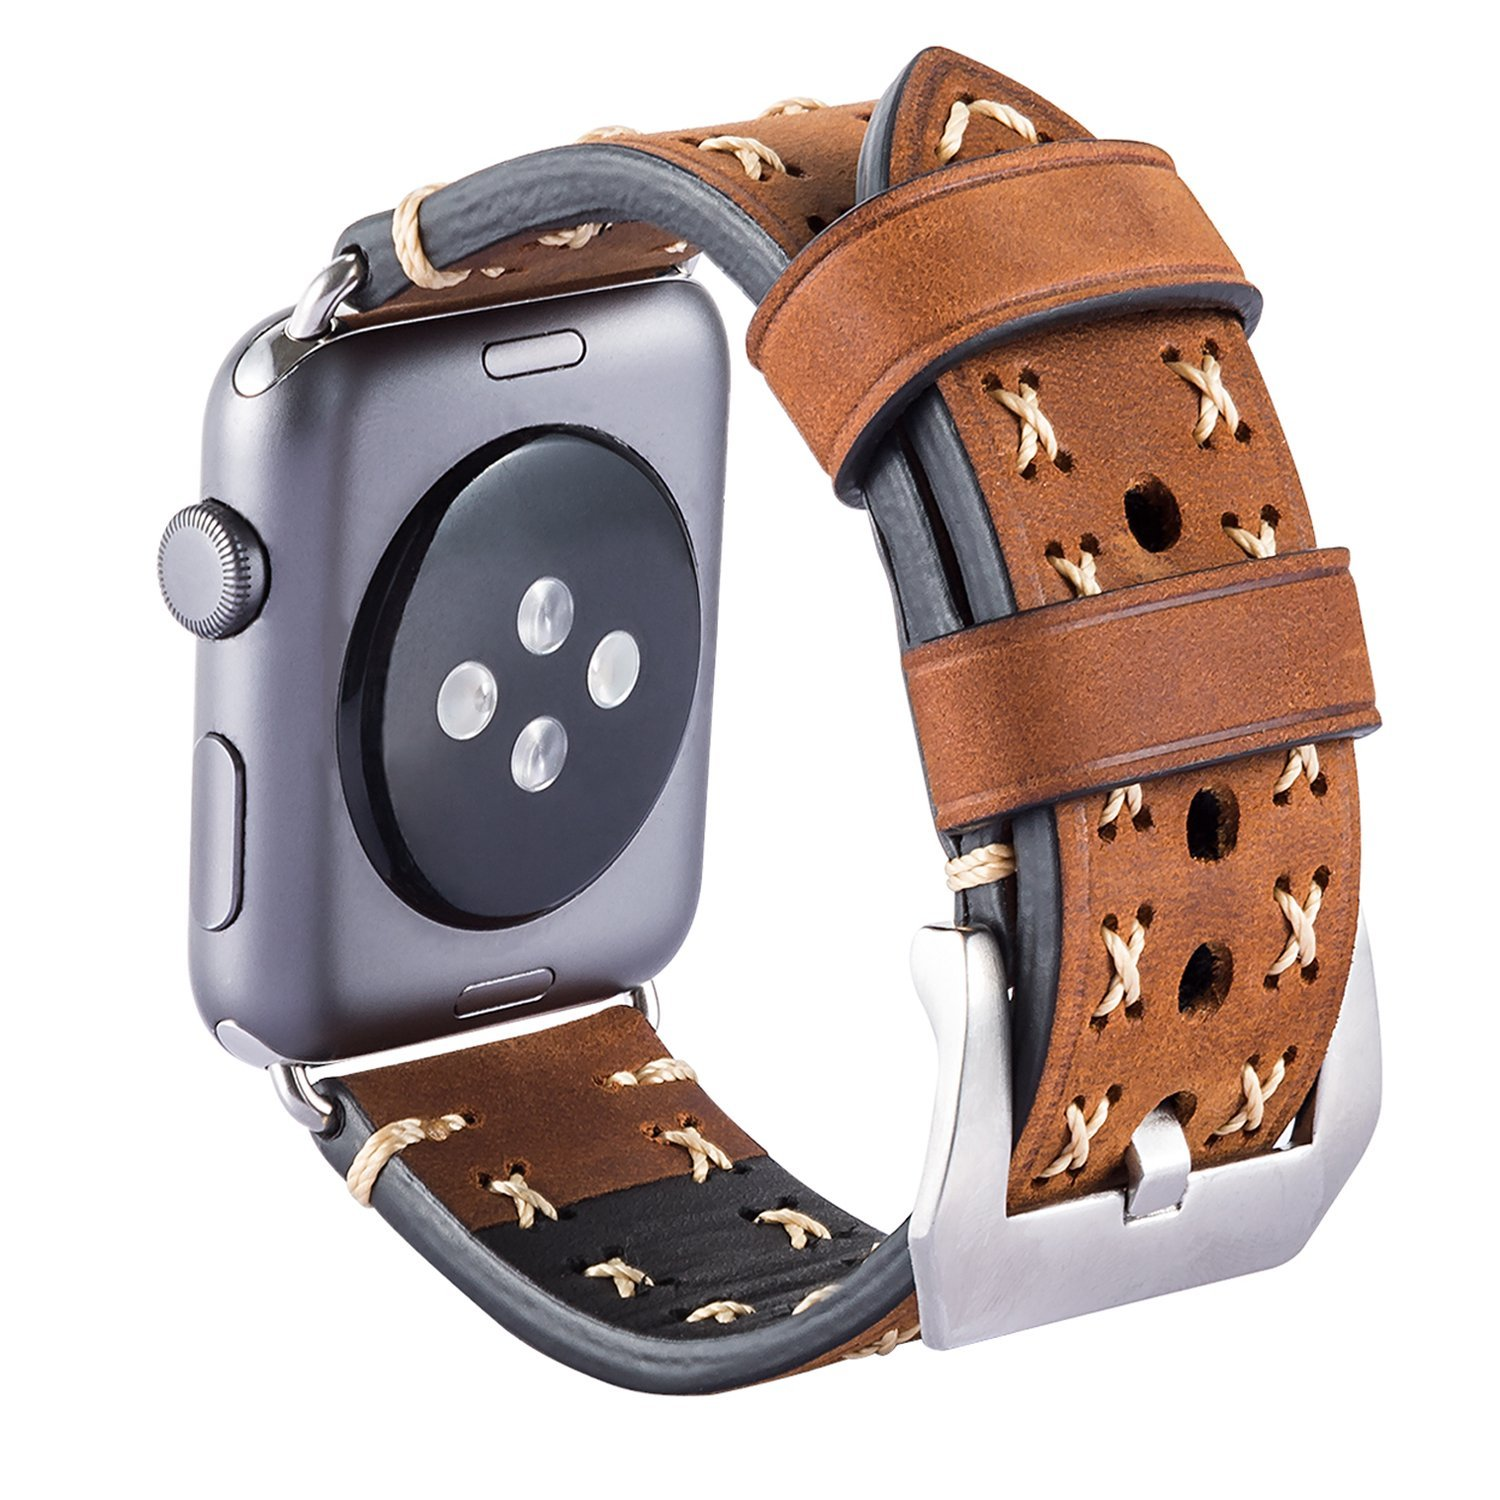 Apple Watch Band, 42mm iBazal Apple Watch Leather Band iWatch Strap Replacement Watchband with Stainless Steel Buckle for All 42mm Apple Watch Series 1 & Series 2 Sport & Edition (Vintage Brown 42mm)